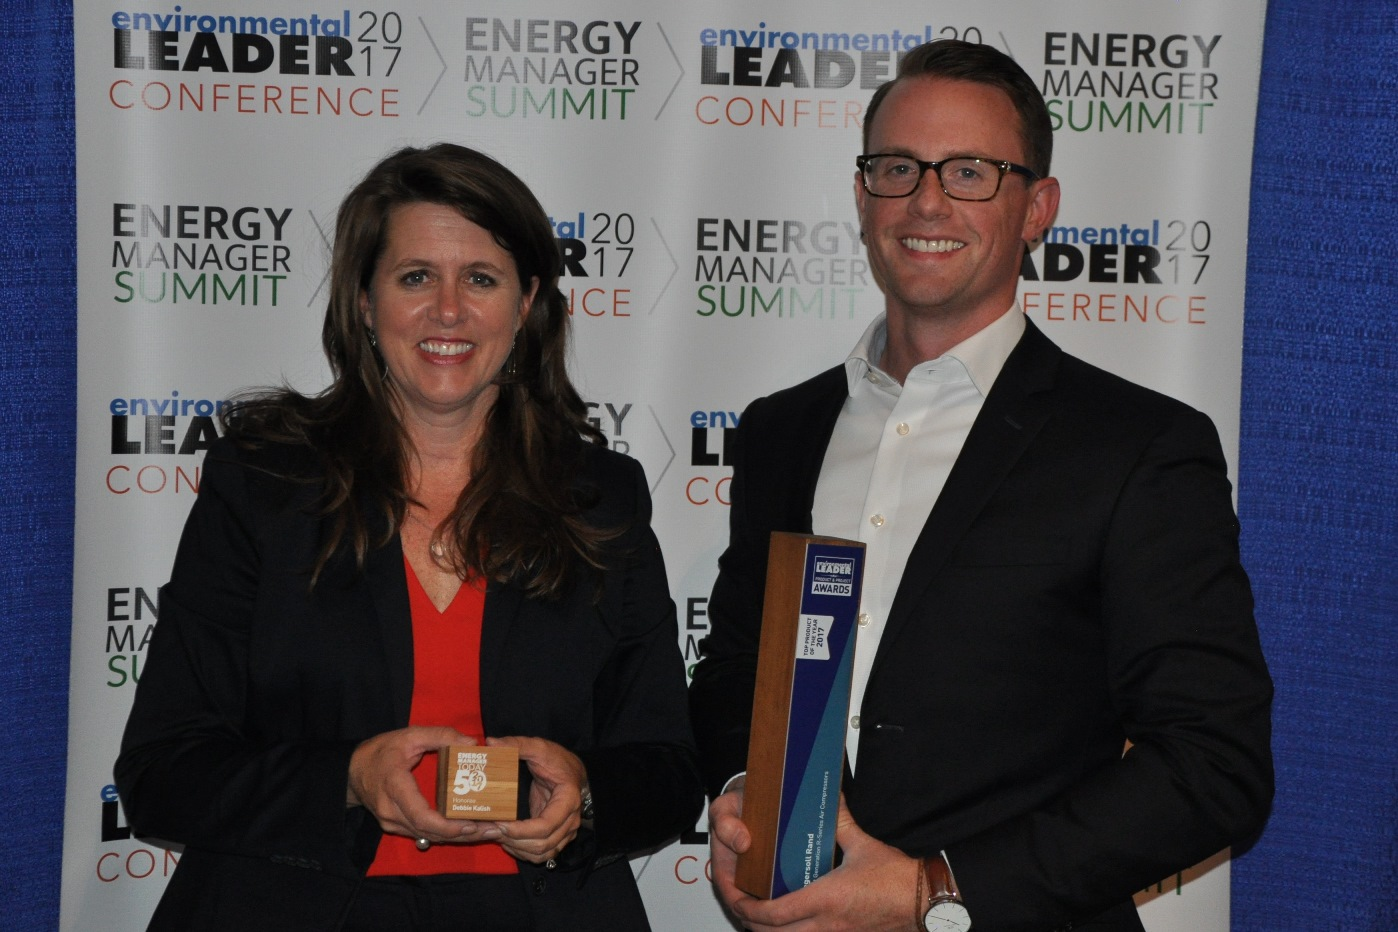 Deborah Kalish of Ingersoll Rand and Kyle Winchester at the Energy Manager Summit